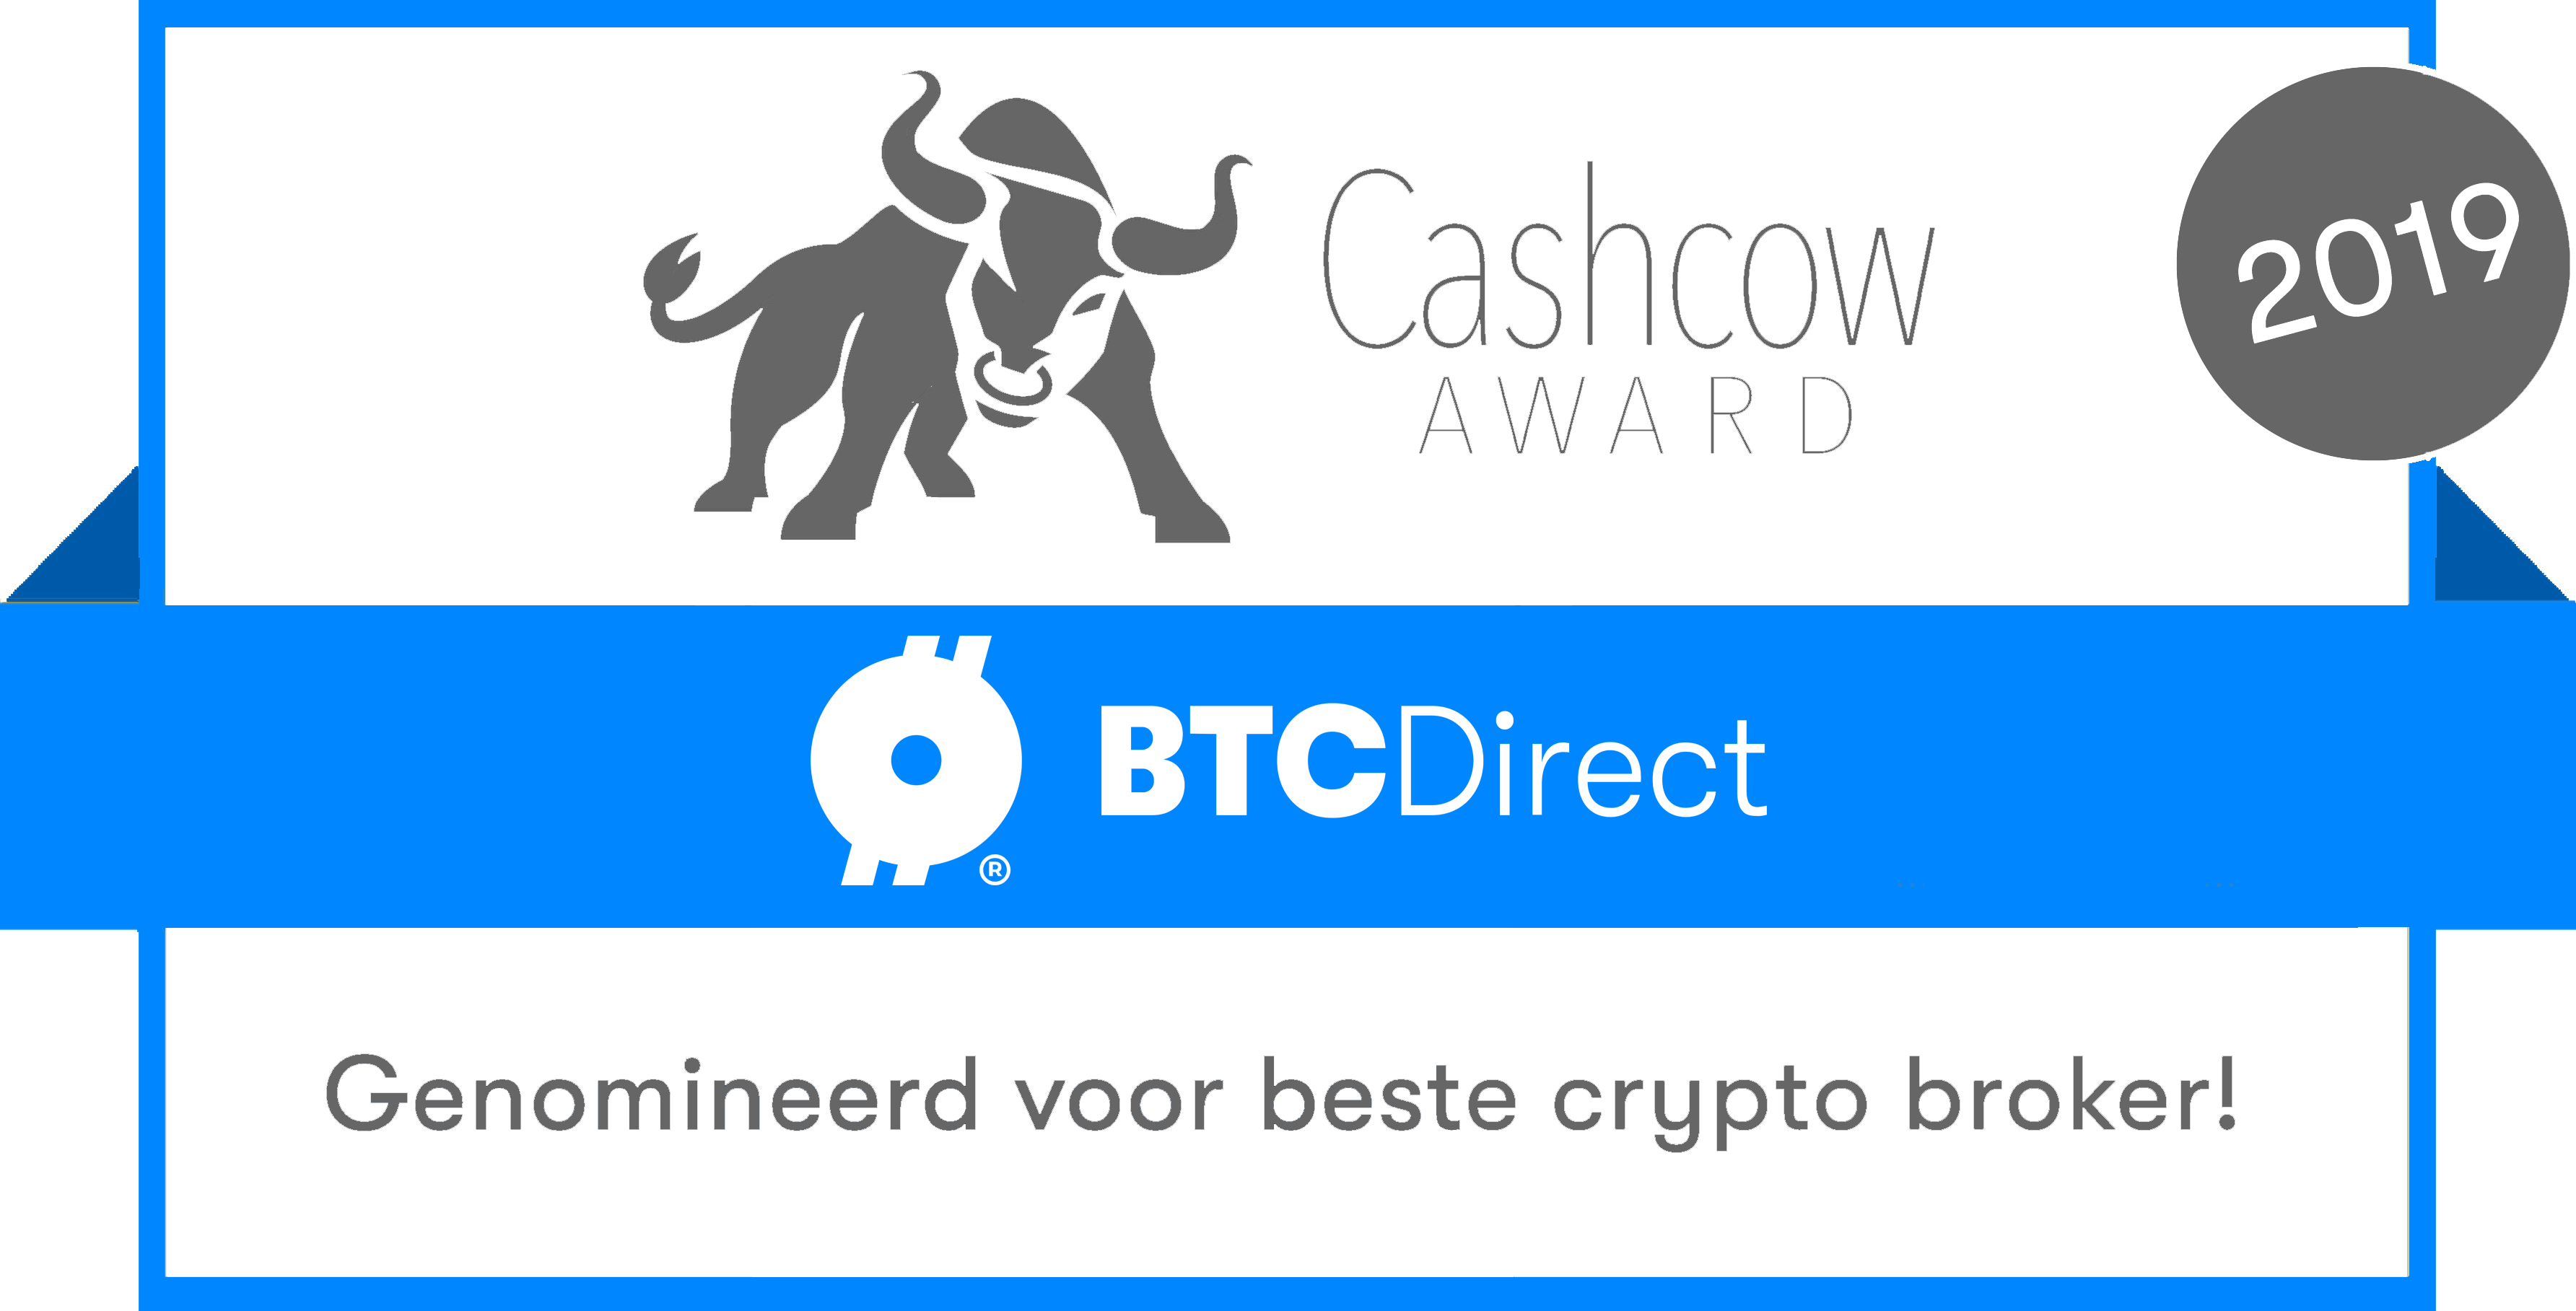 CashCow Award BTC Direct